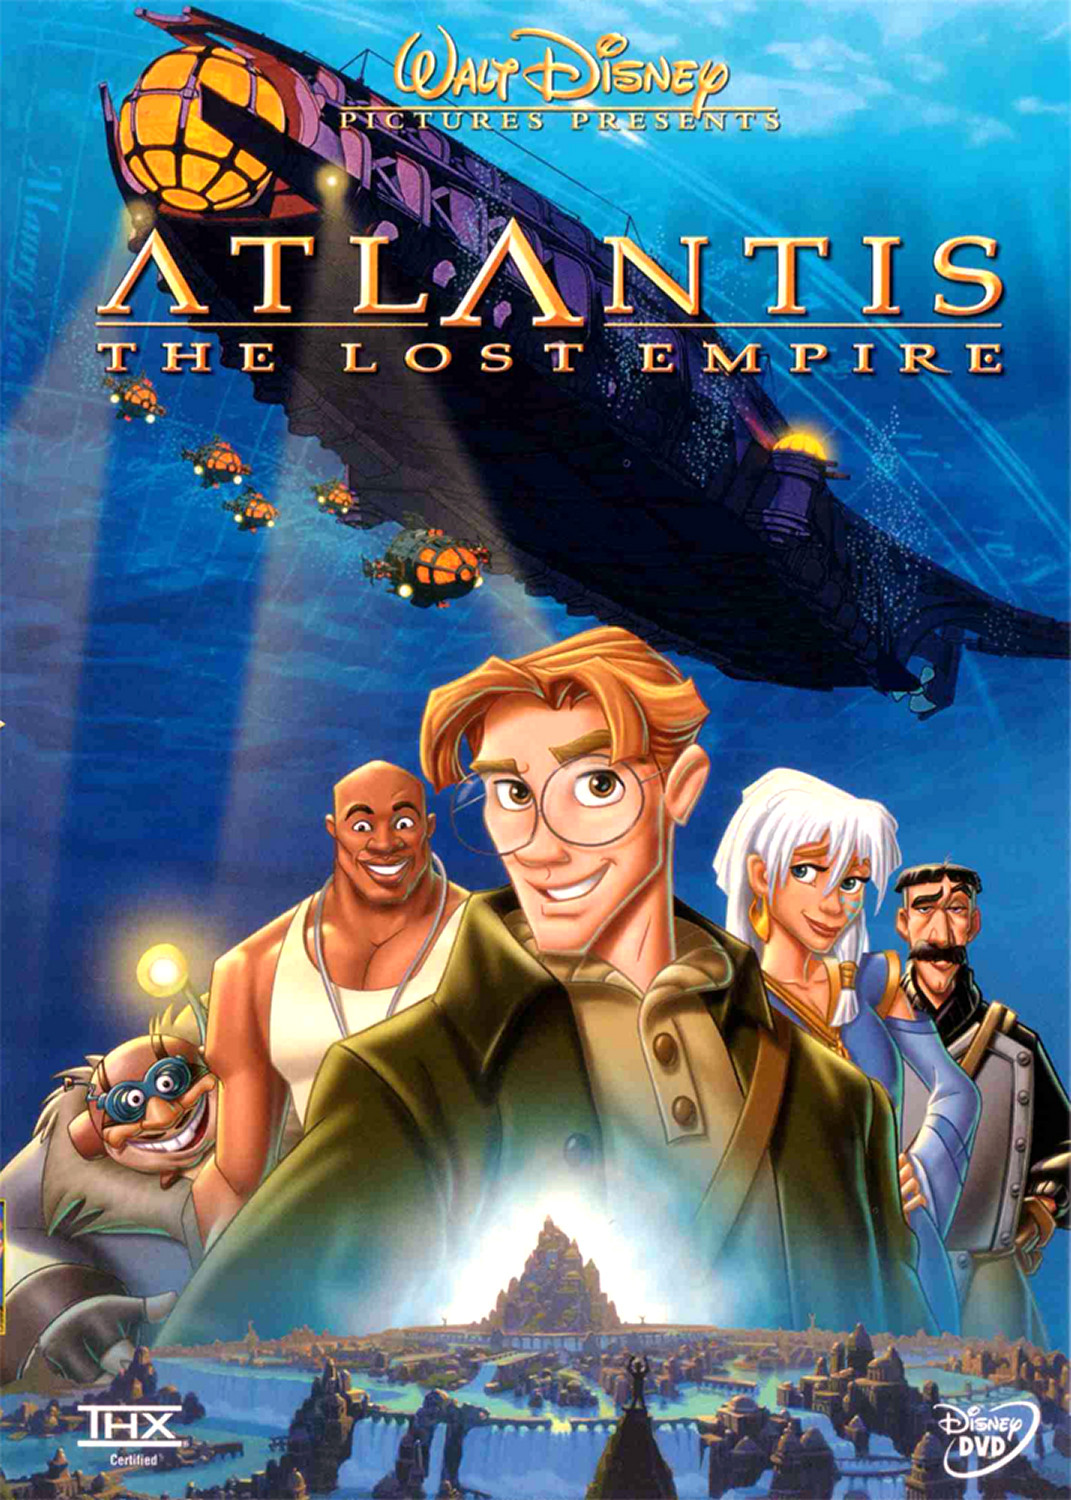 an overview of the atlantis myth What is a summary of the new atlantis francis bacon's the new atlantis is essentially a utopian story about an island, called bensalem, which travelers discover during a voyage to the south seas.